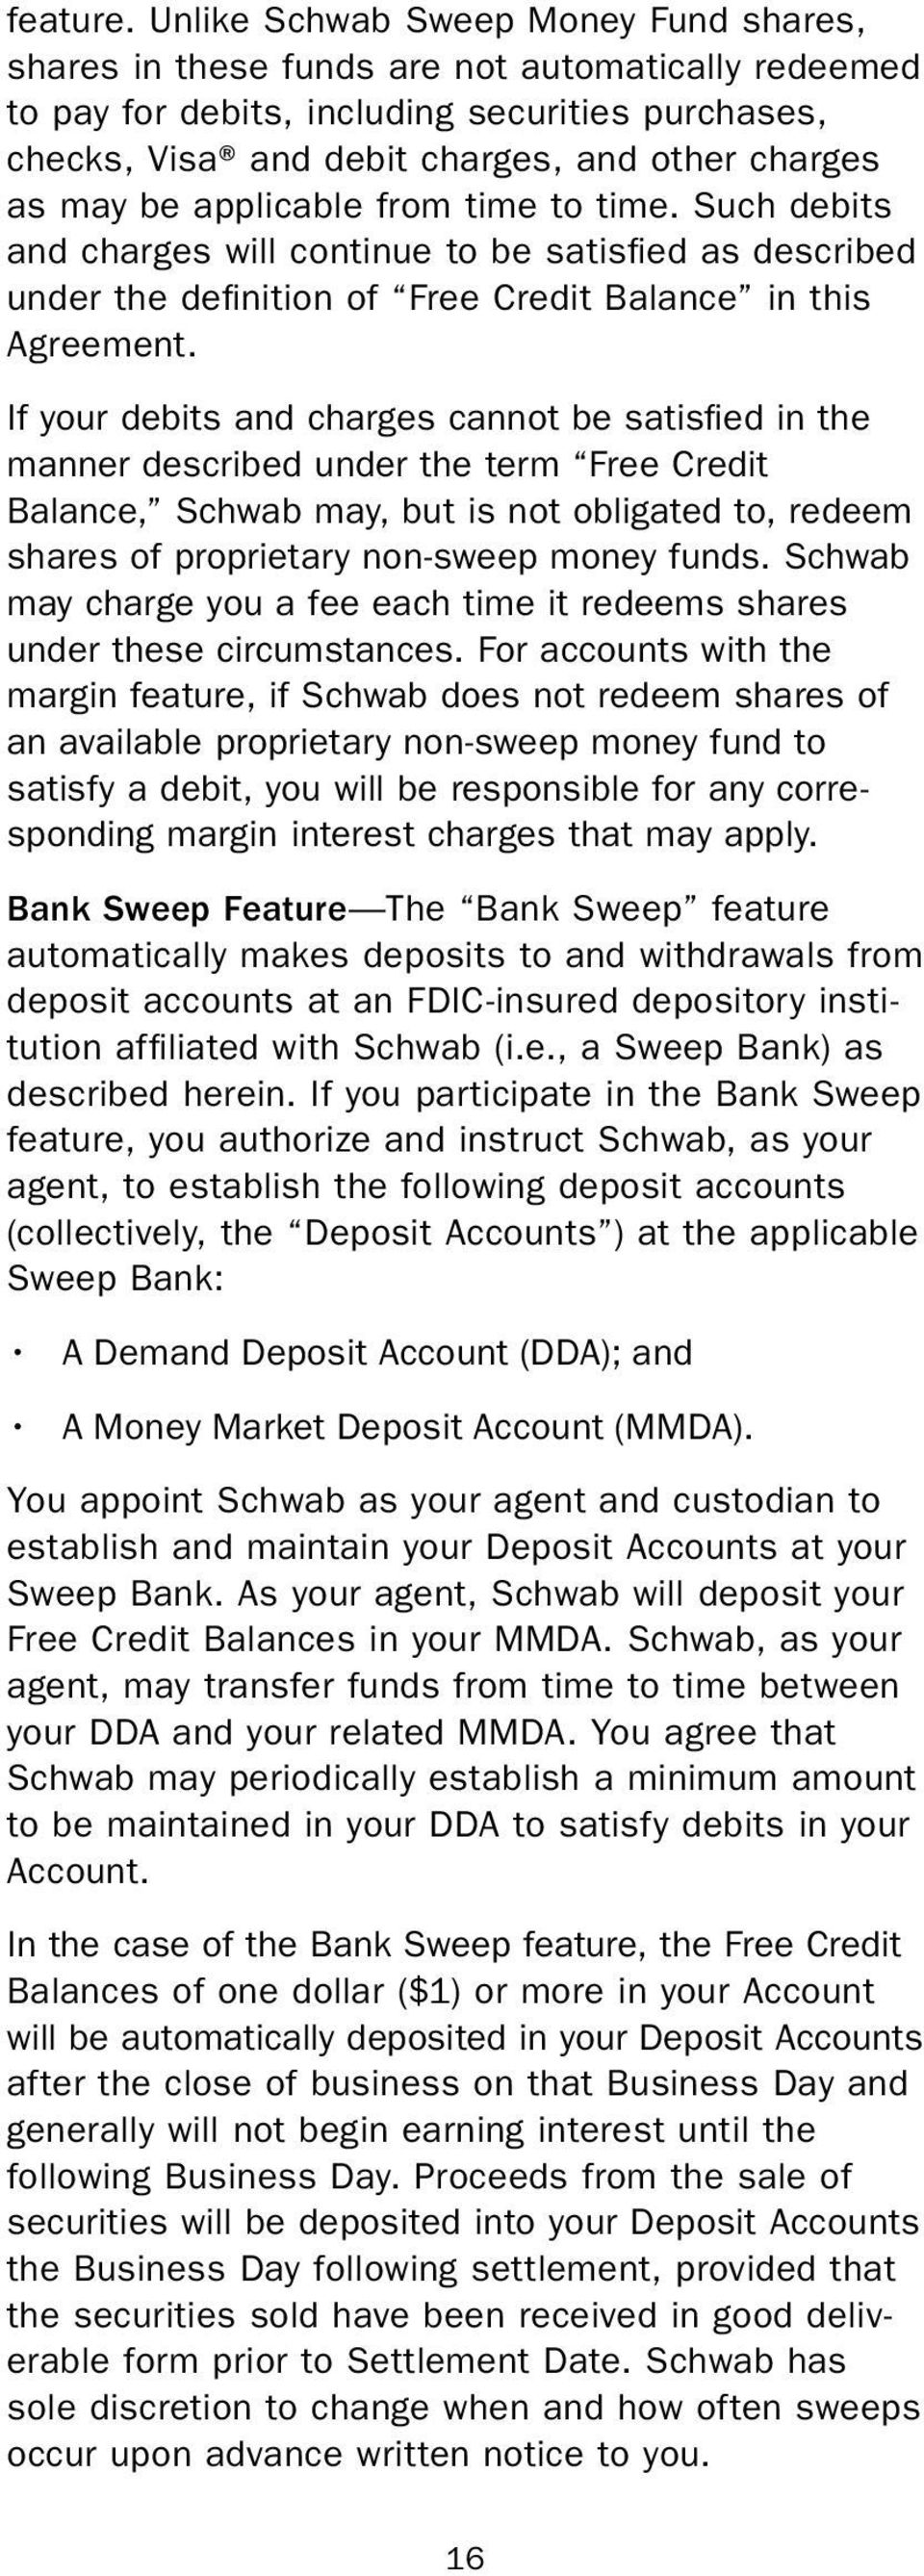 Schwab One Account Agreement Pdf